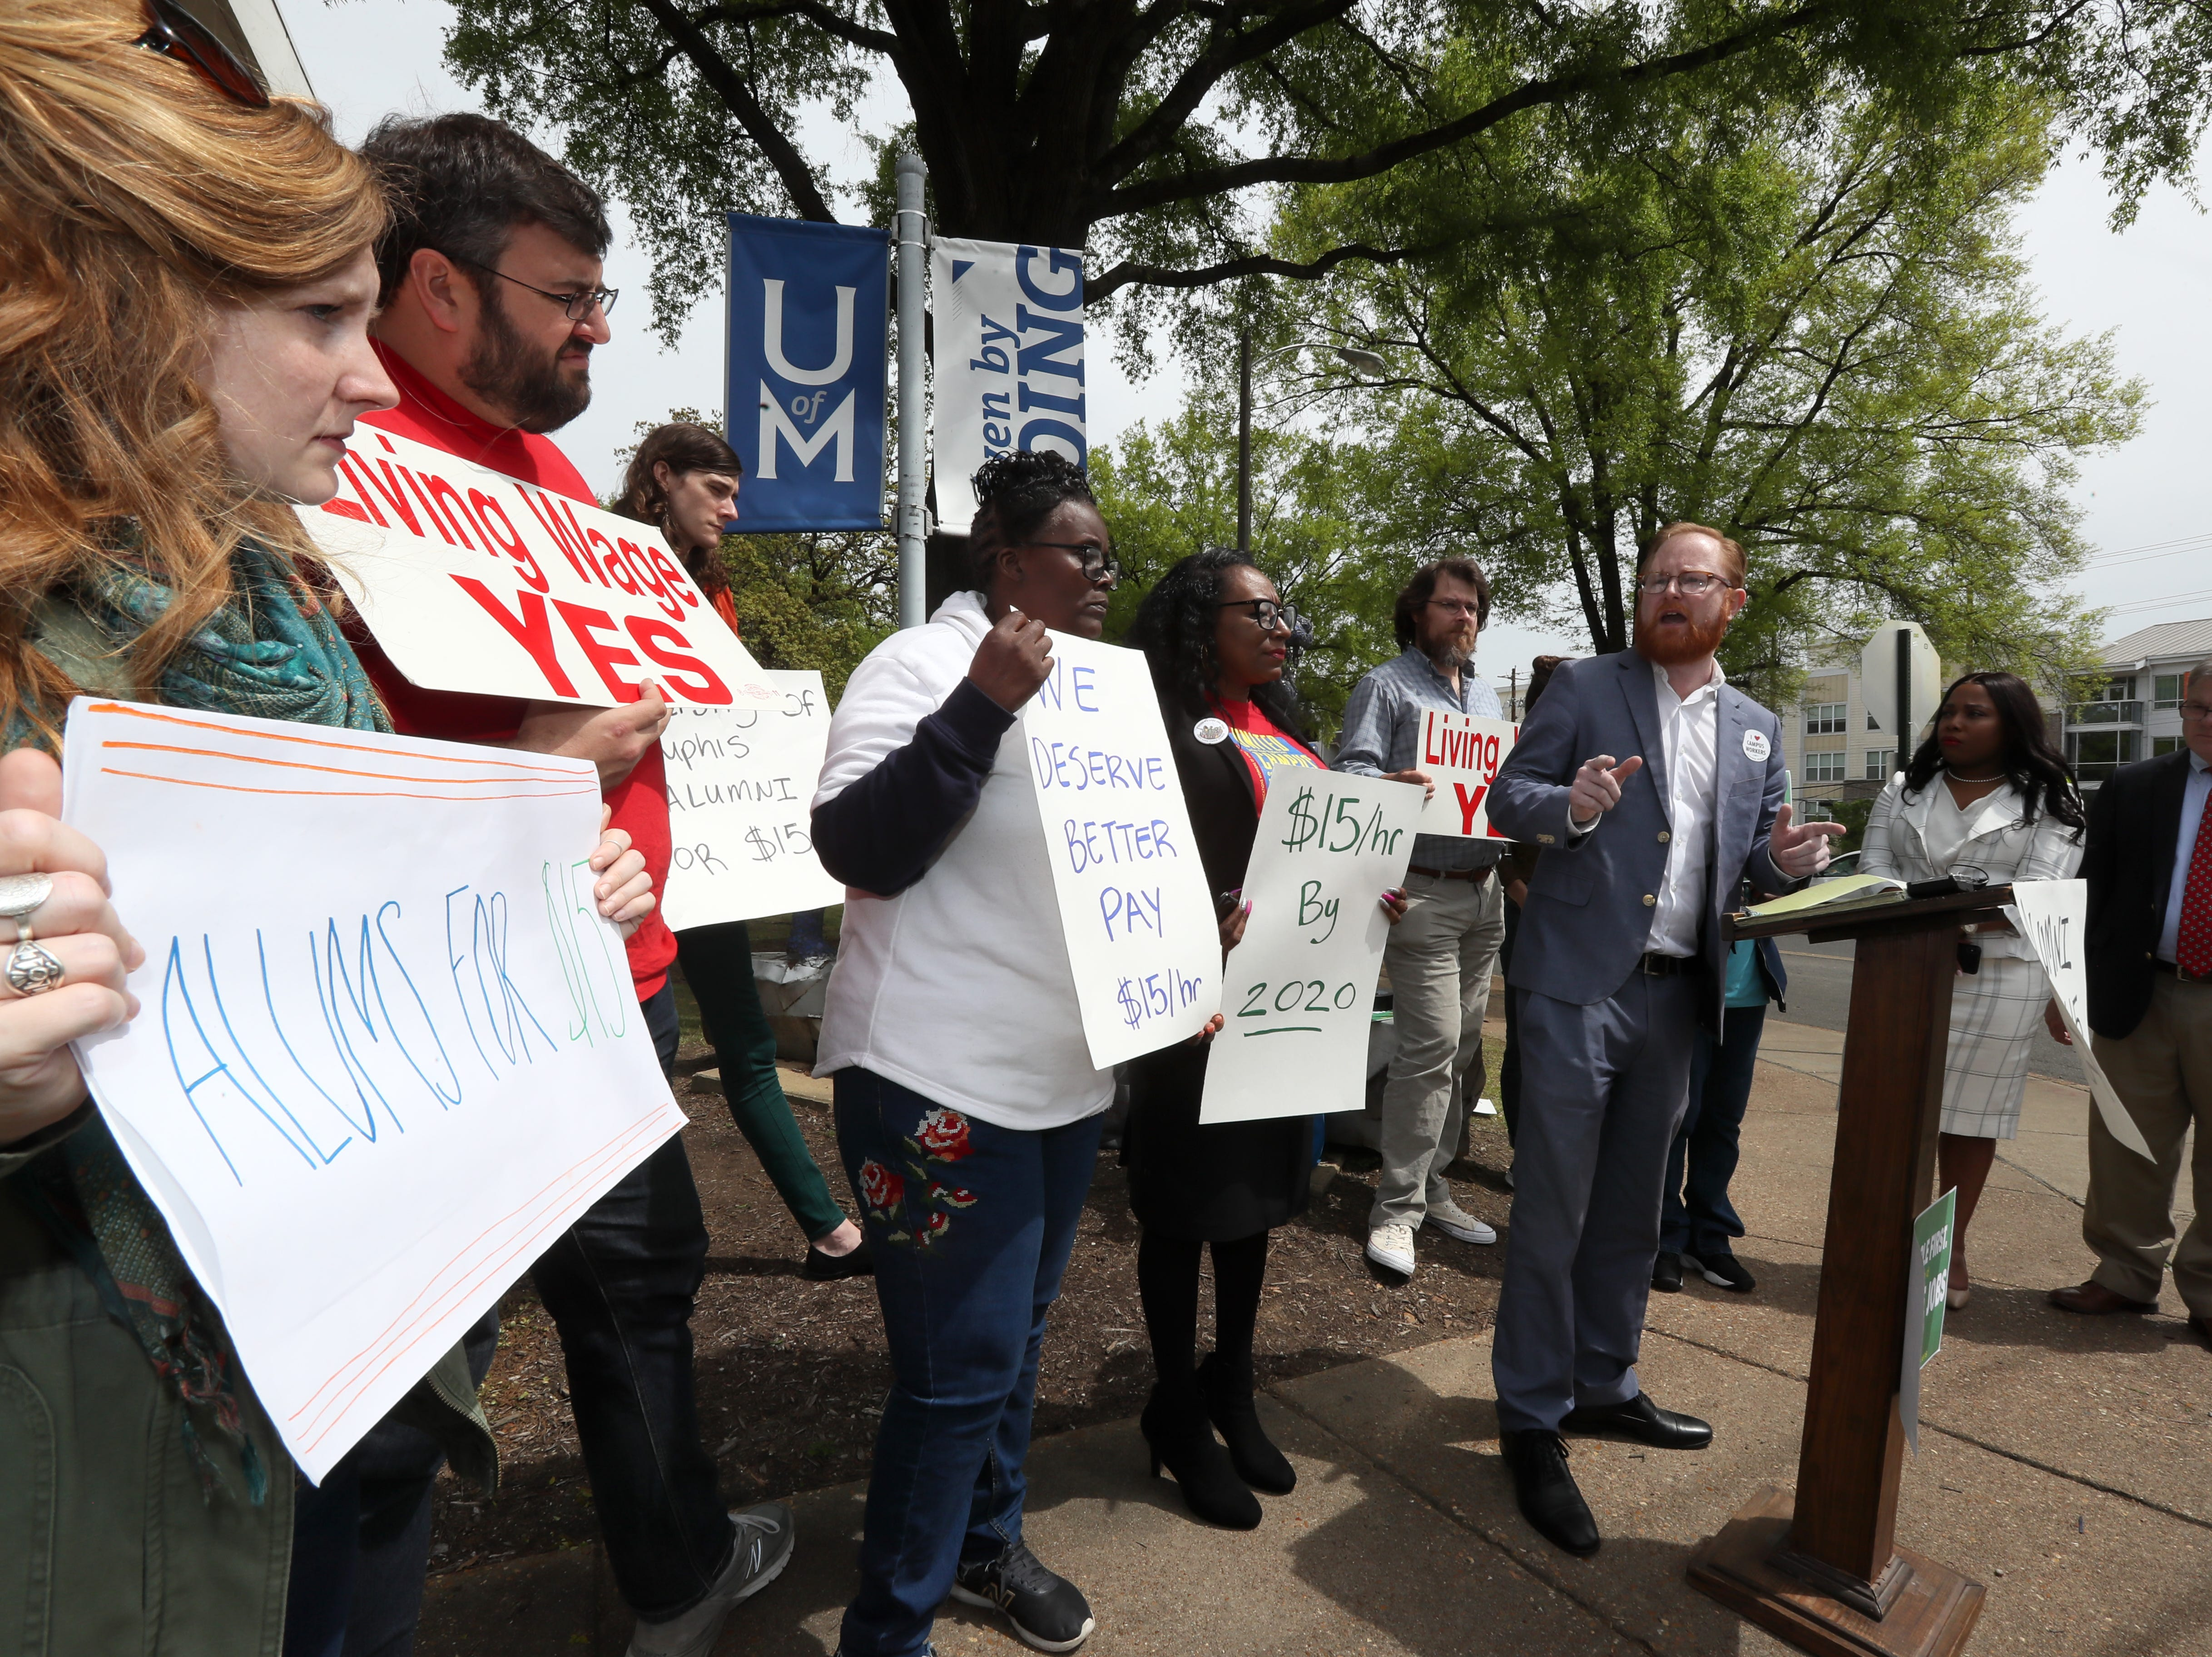 Allan Creasy speaks during a press conference to address implementing a $15 minimum hourly wage for all campus employees at the University of Memphis on Friday, April 12, 2019.